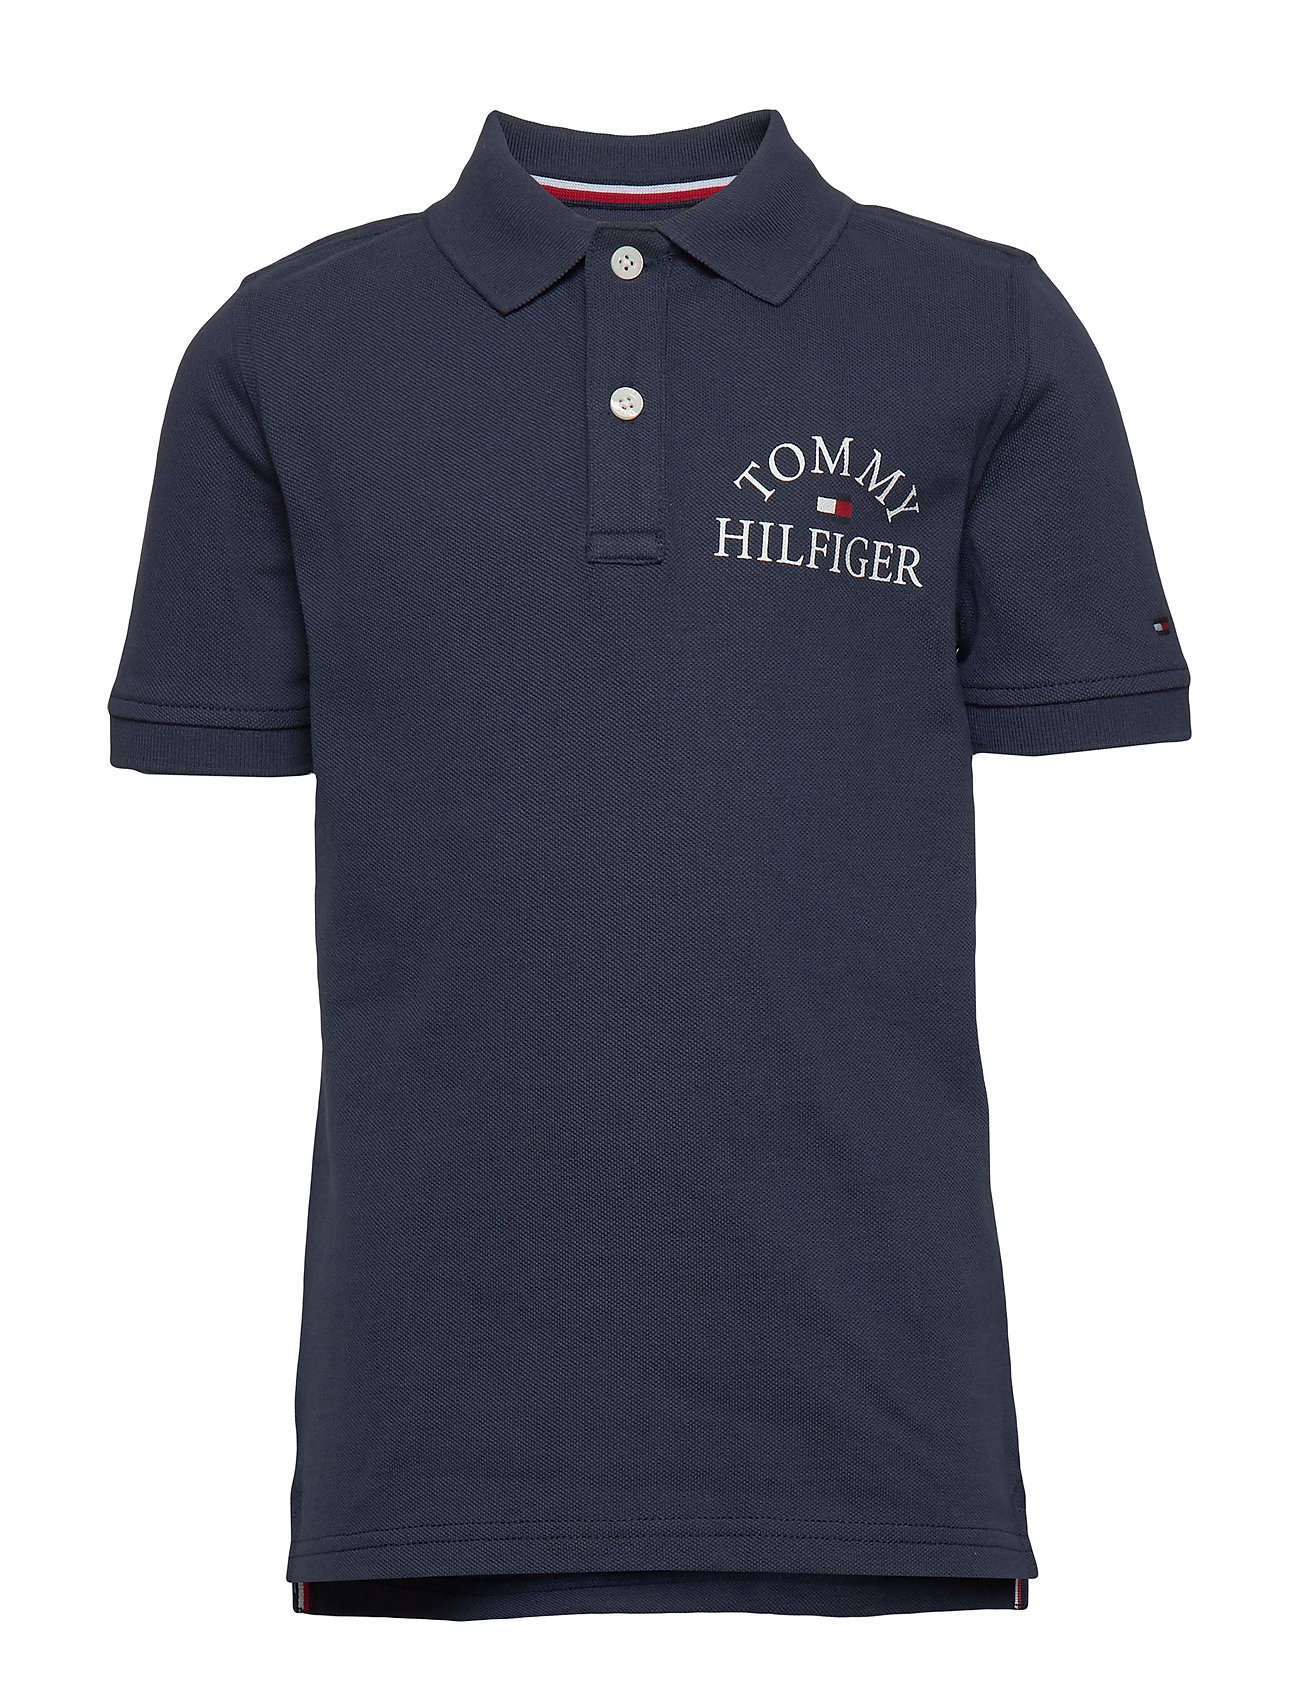 Tommy Hilfiger ESSENTIAL LOGO CHEST POLO S/S - TWILIGHT NAVY 654-860